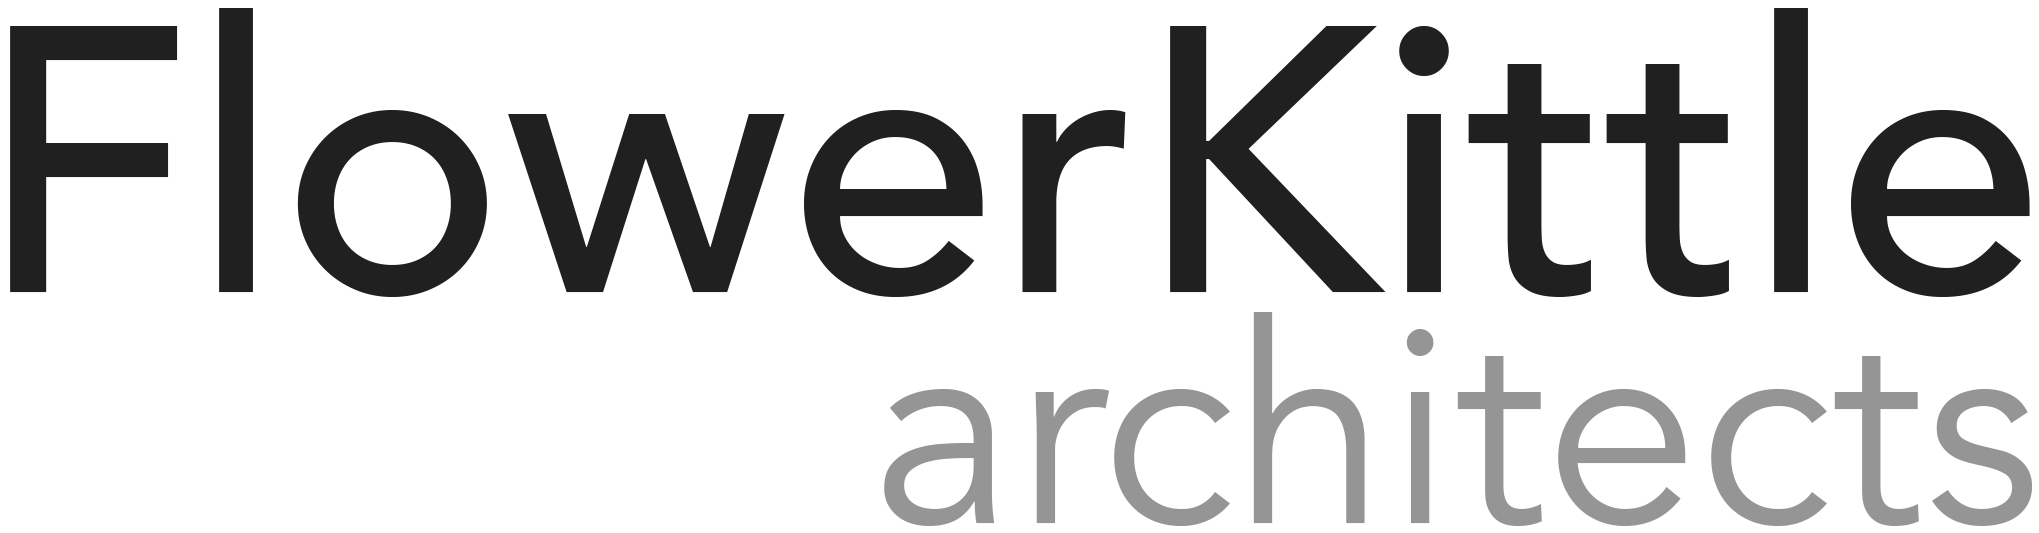 FlowerKittle Architects Logo